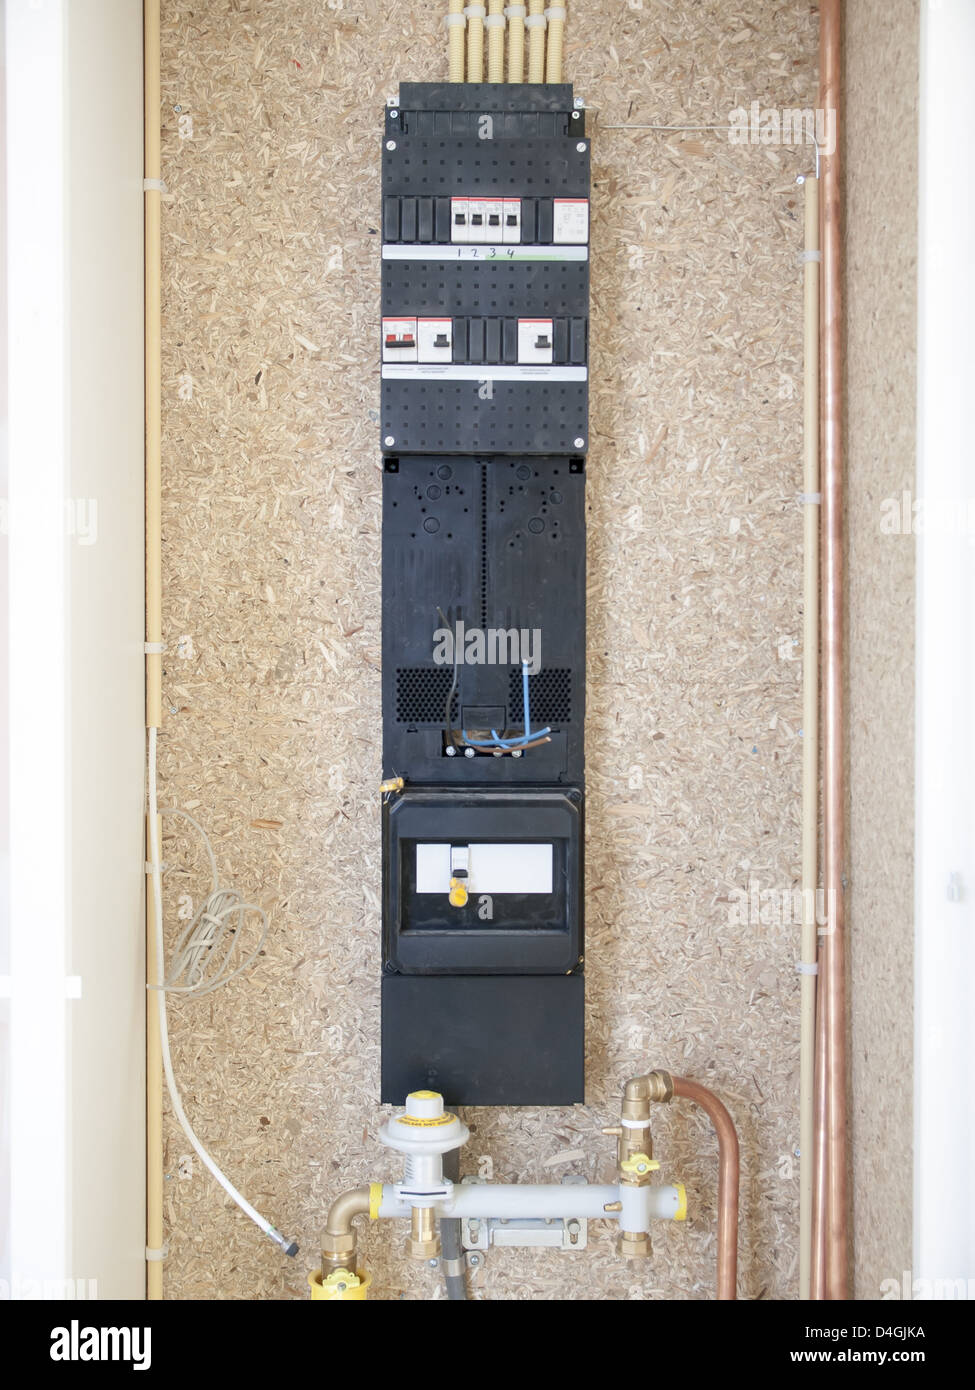 hight resolution of meter fuse box in a house under construction